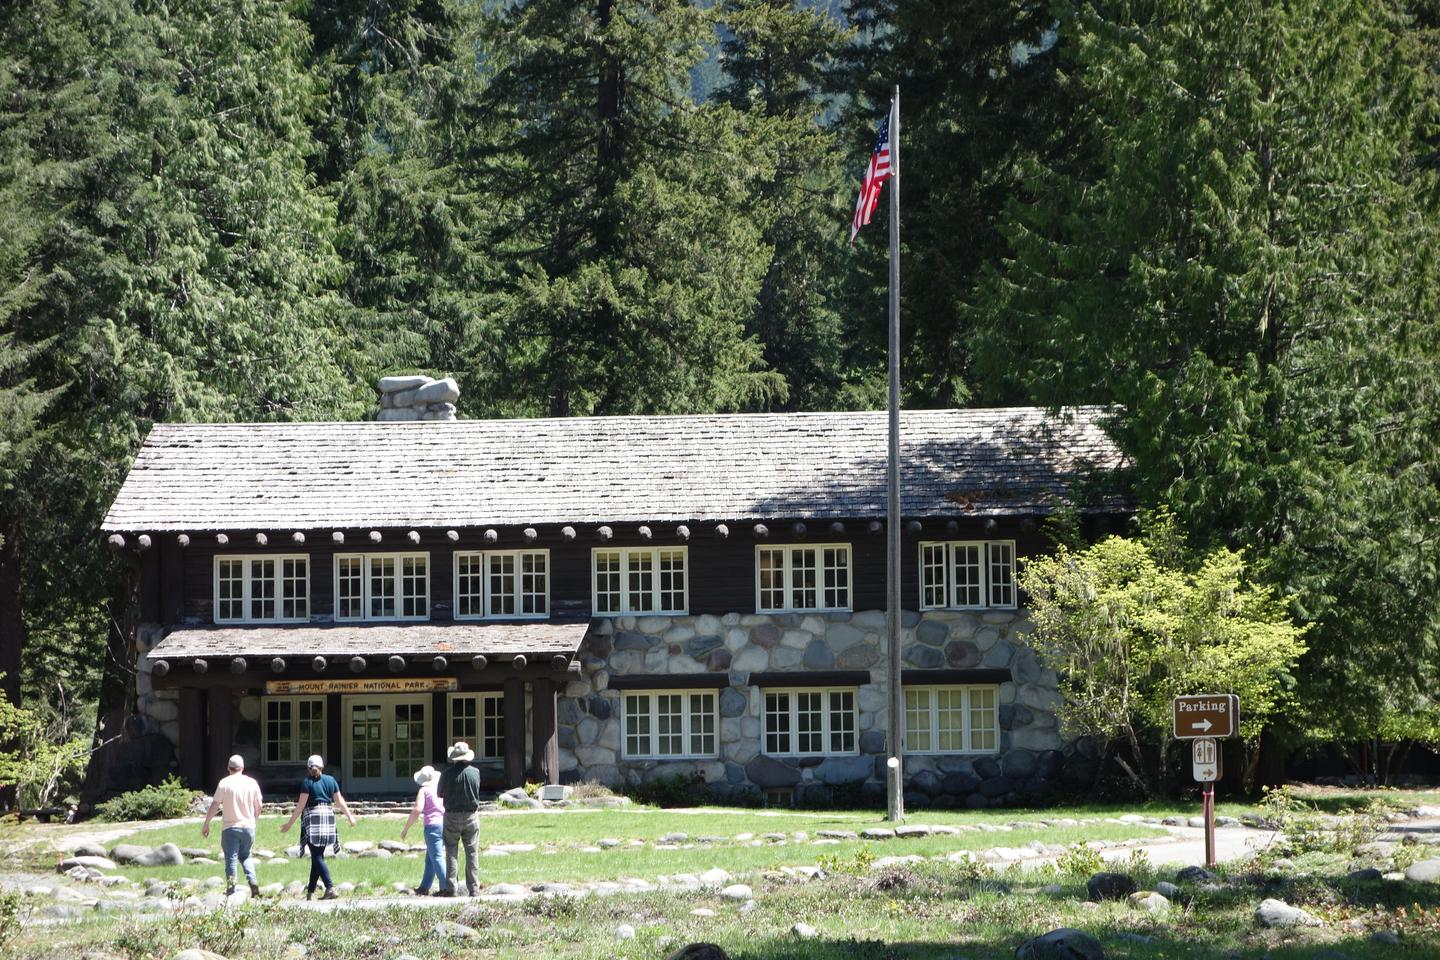 Longmire Administration Building in SummerThe Longmire Wilderness Information Center is located inside the lobby of the historic Longmire Administration Building.